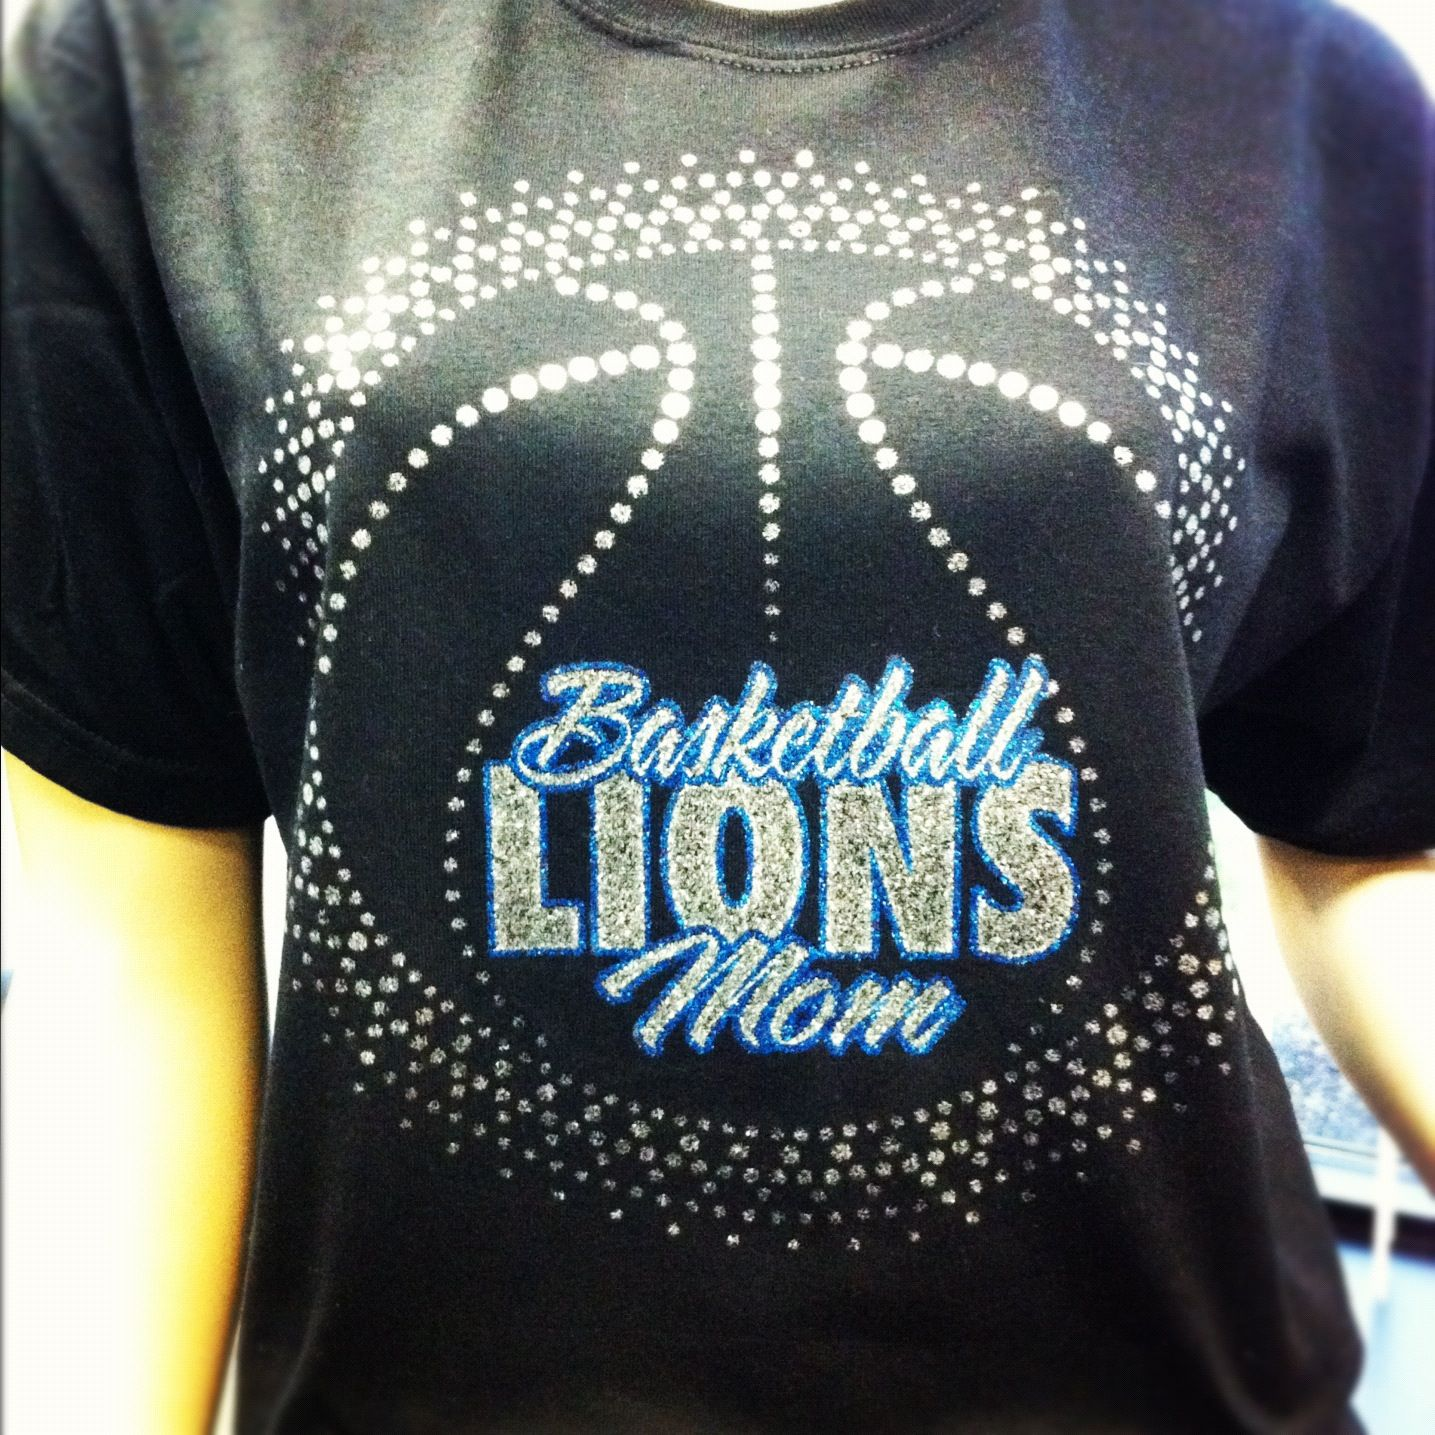 Basketball T Shirt Design Ideas basketball tee shirt designs google search T Shirt Design With Glitter Faux Rhinestones More Ideas